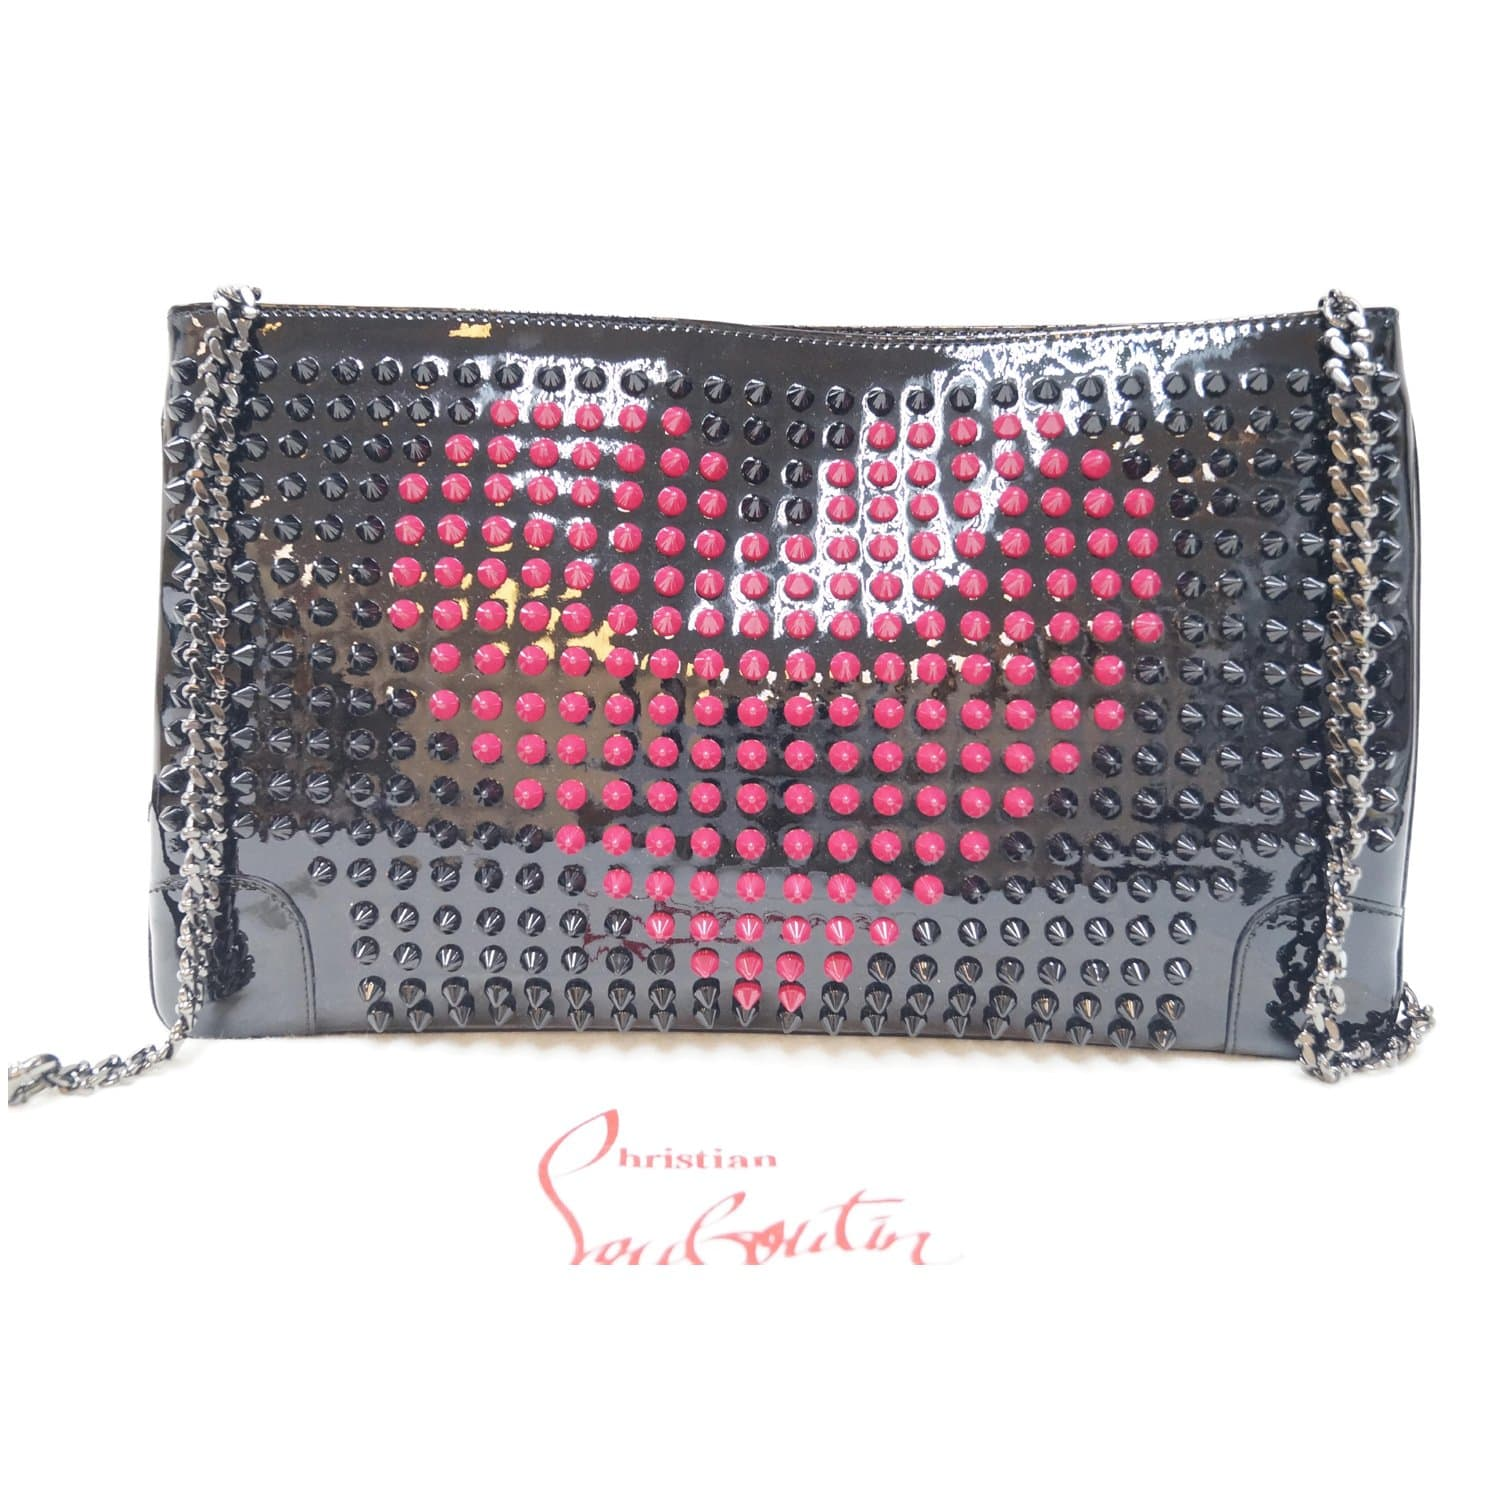 6d1151b320e CHRISTIAN LOUBOUTIN Patent Leather Loubiposh Valentines Spiked Clutch-US